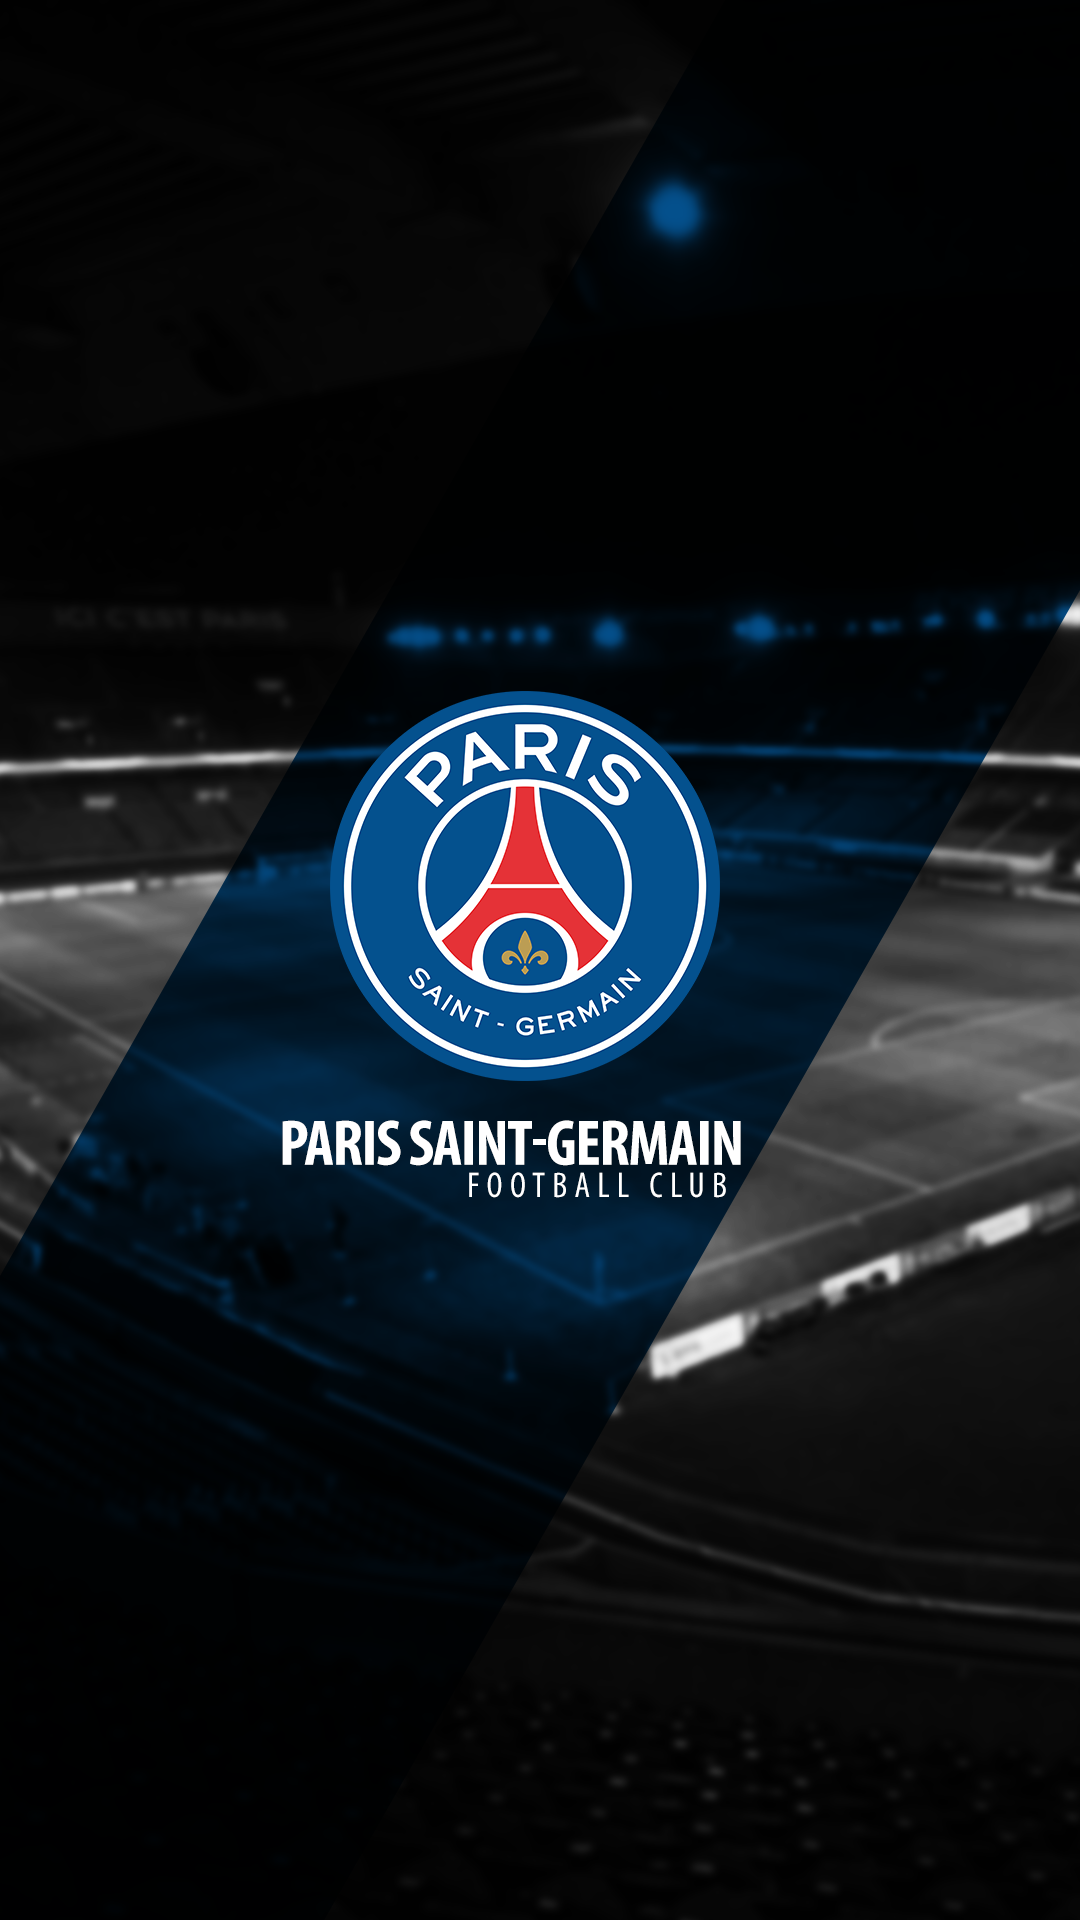 Live Wallpaper Hd Paris Saint Germain Paris Saint Saint Germain